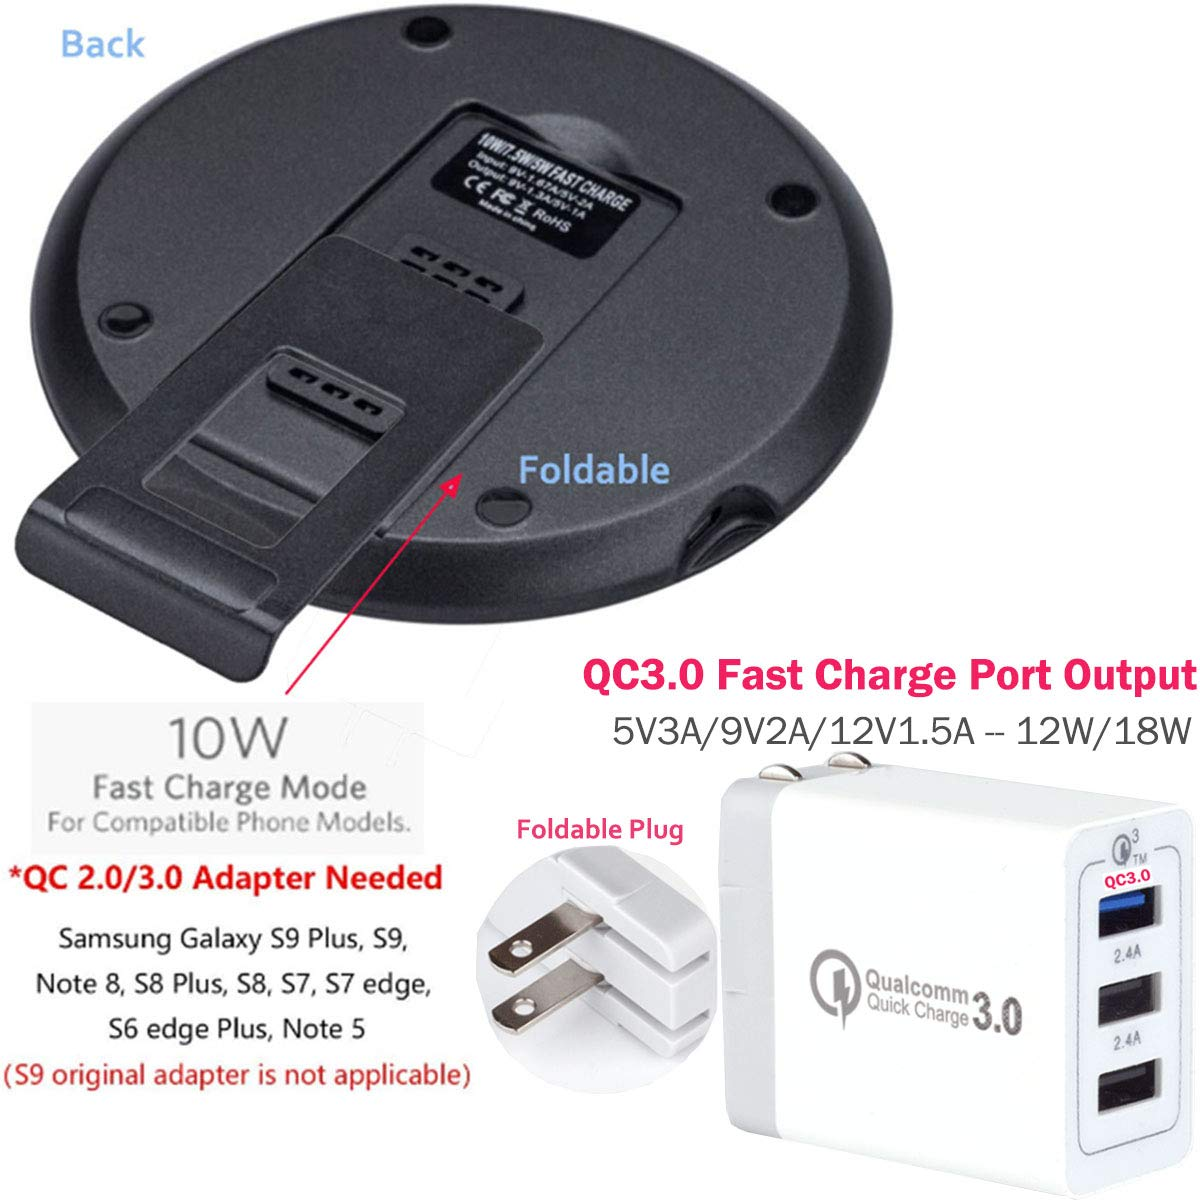 4dd6ce27bcd8e5 Amazon.com: Wireless QI Fast Charger + Triple QC3.0 USB Wall Adapter - LarKoo  Wireless Quick Charging Pad w/Detachable Magnet Foldable Phone Stand Holder  ...